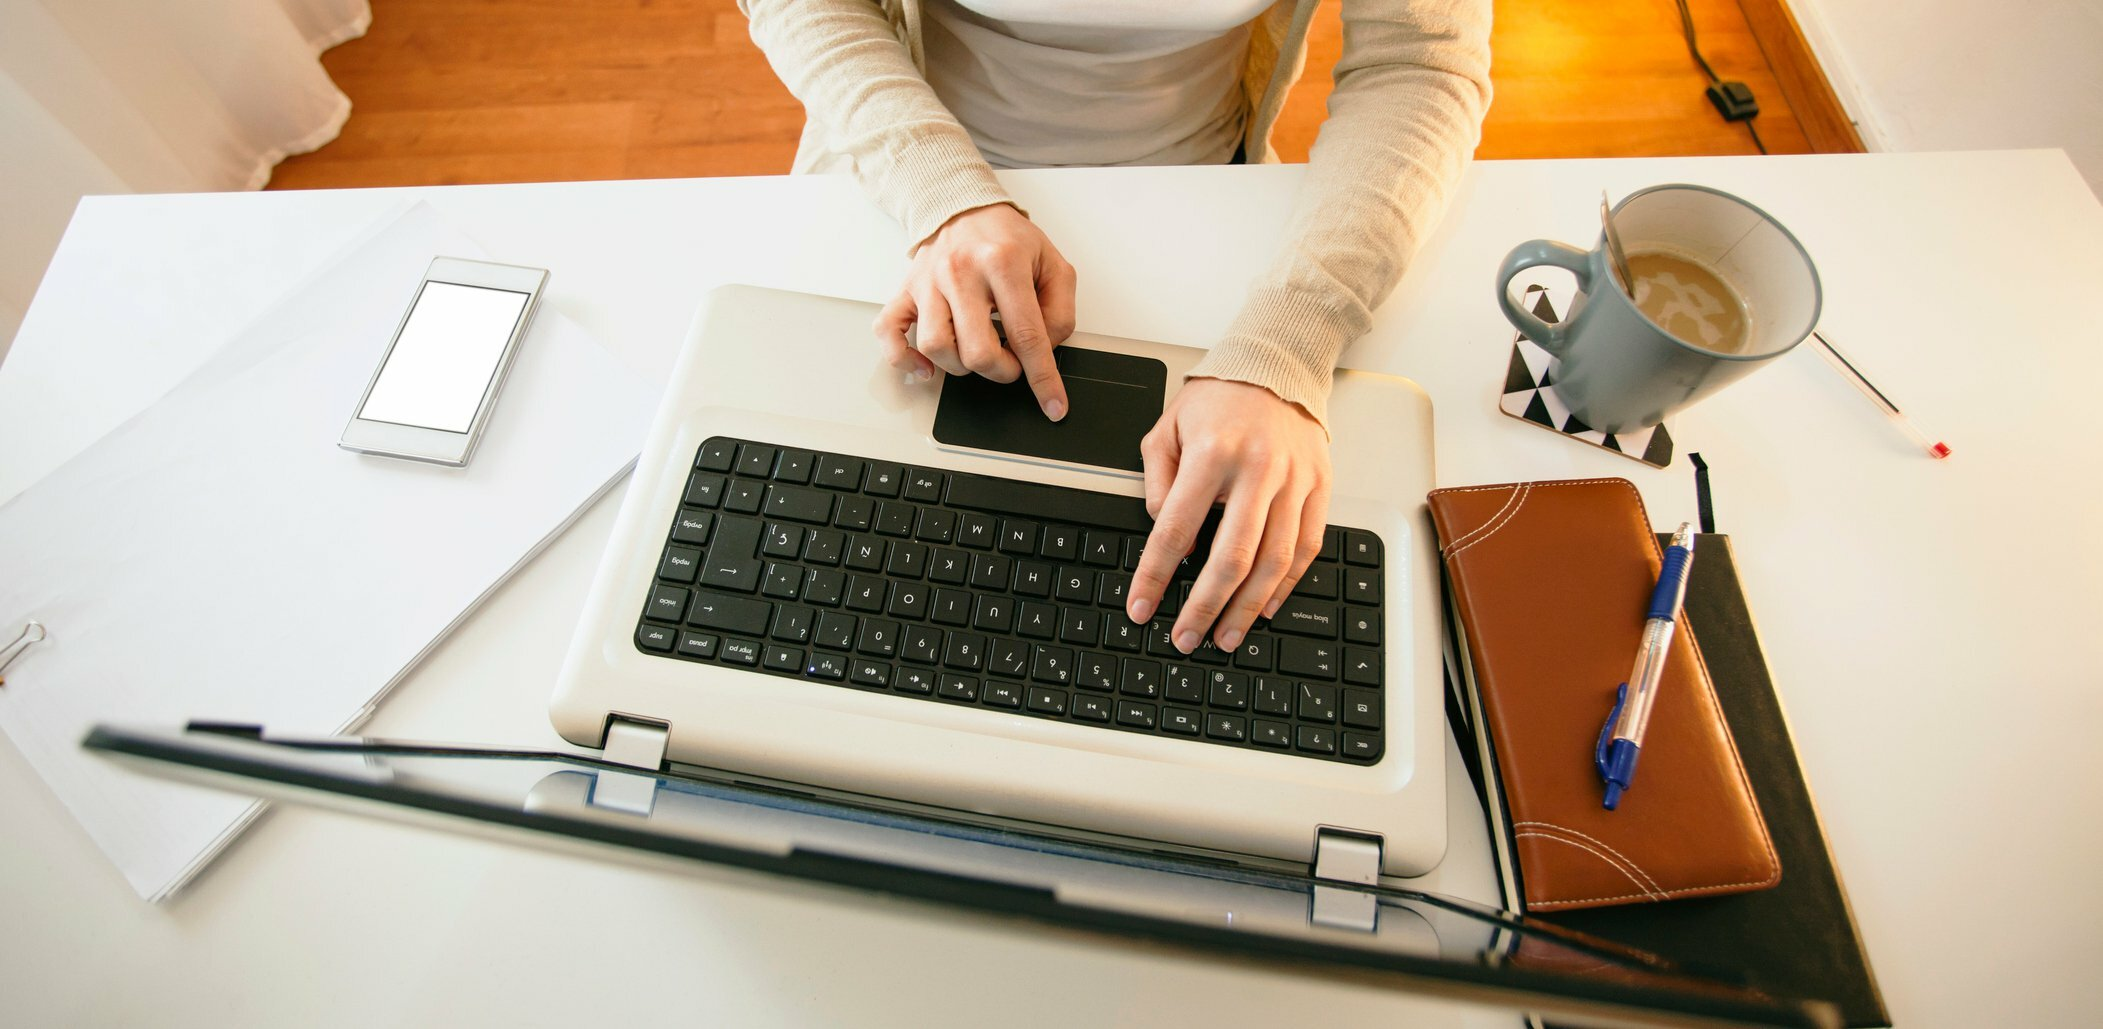 How to Write a LinkedIn Article if You're Not a Writer (and Still Sound Credible)